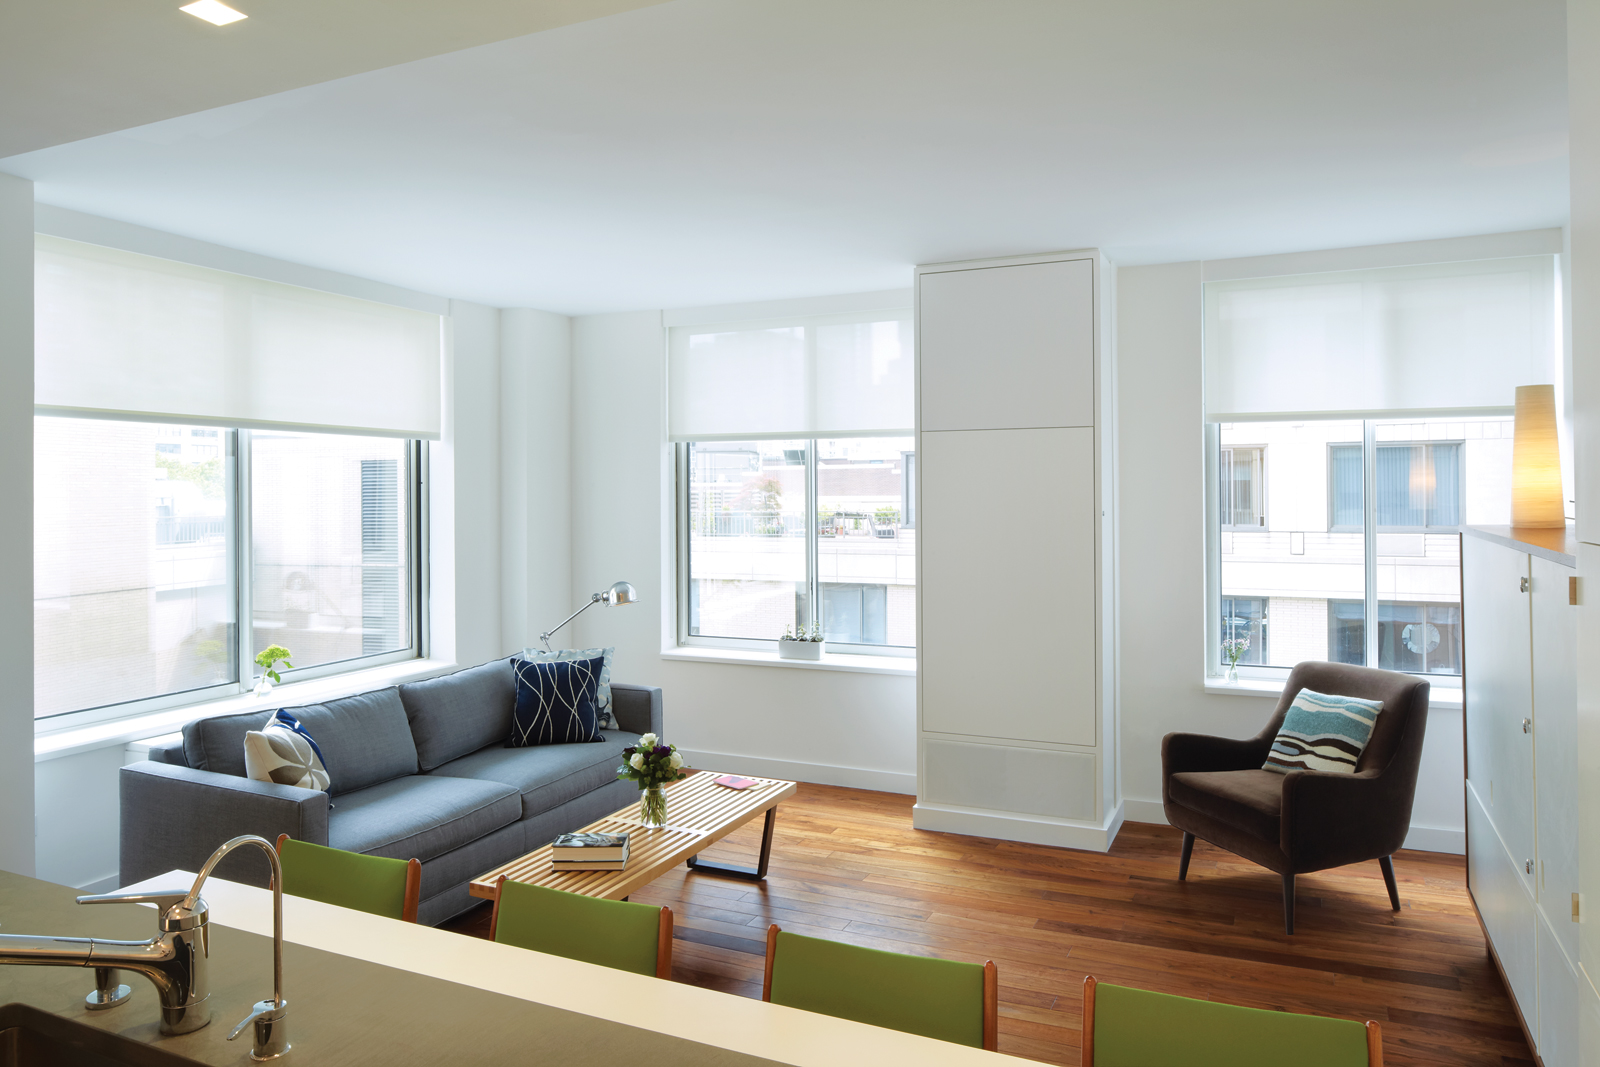 Small apartment space in Manhattan New York